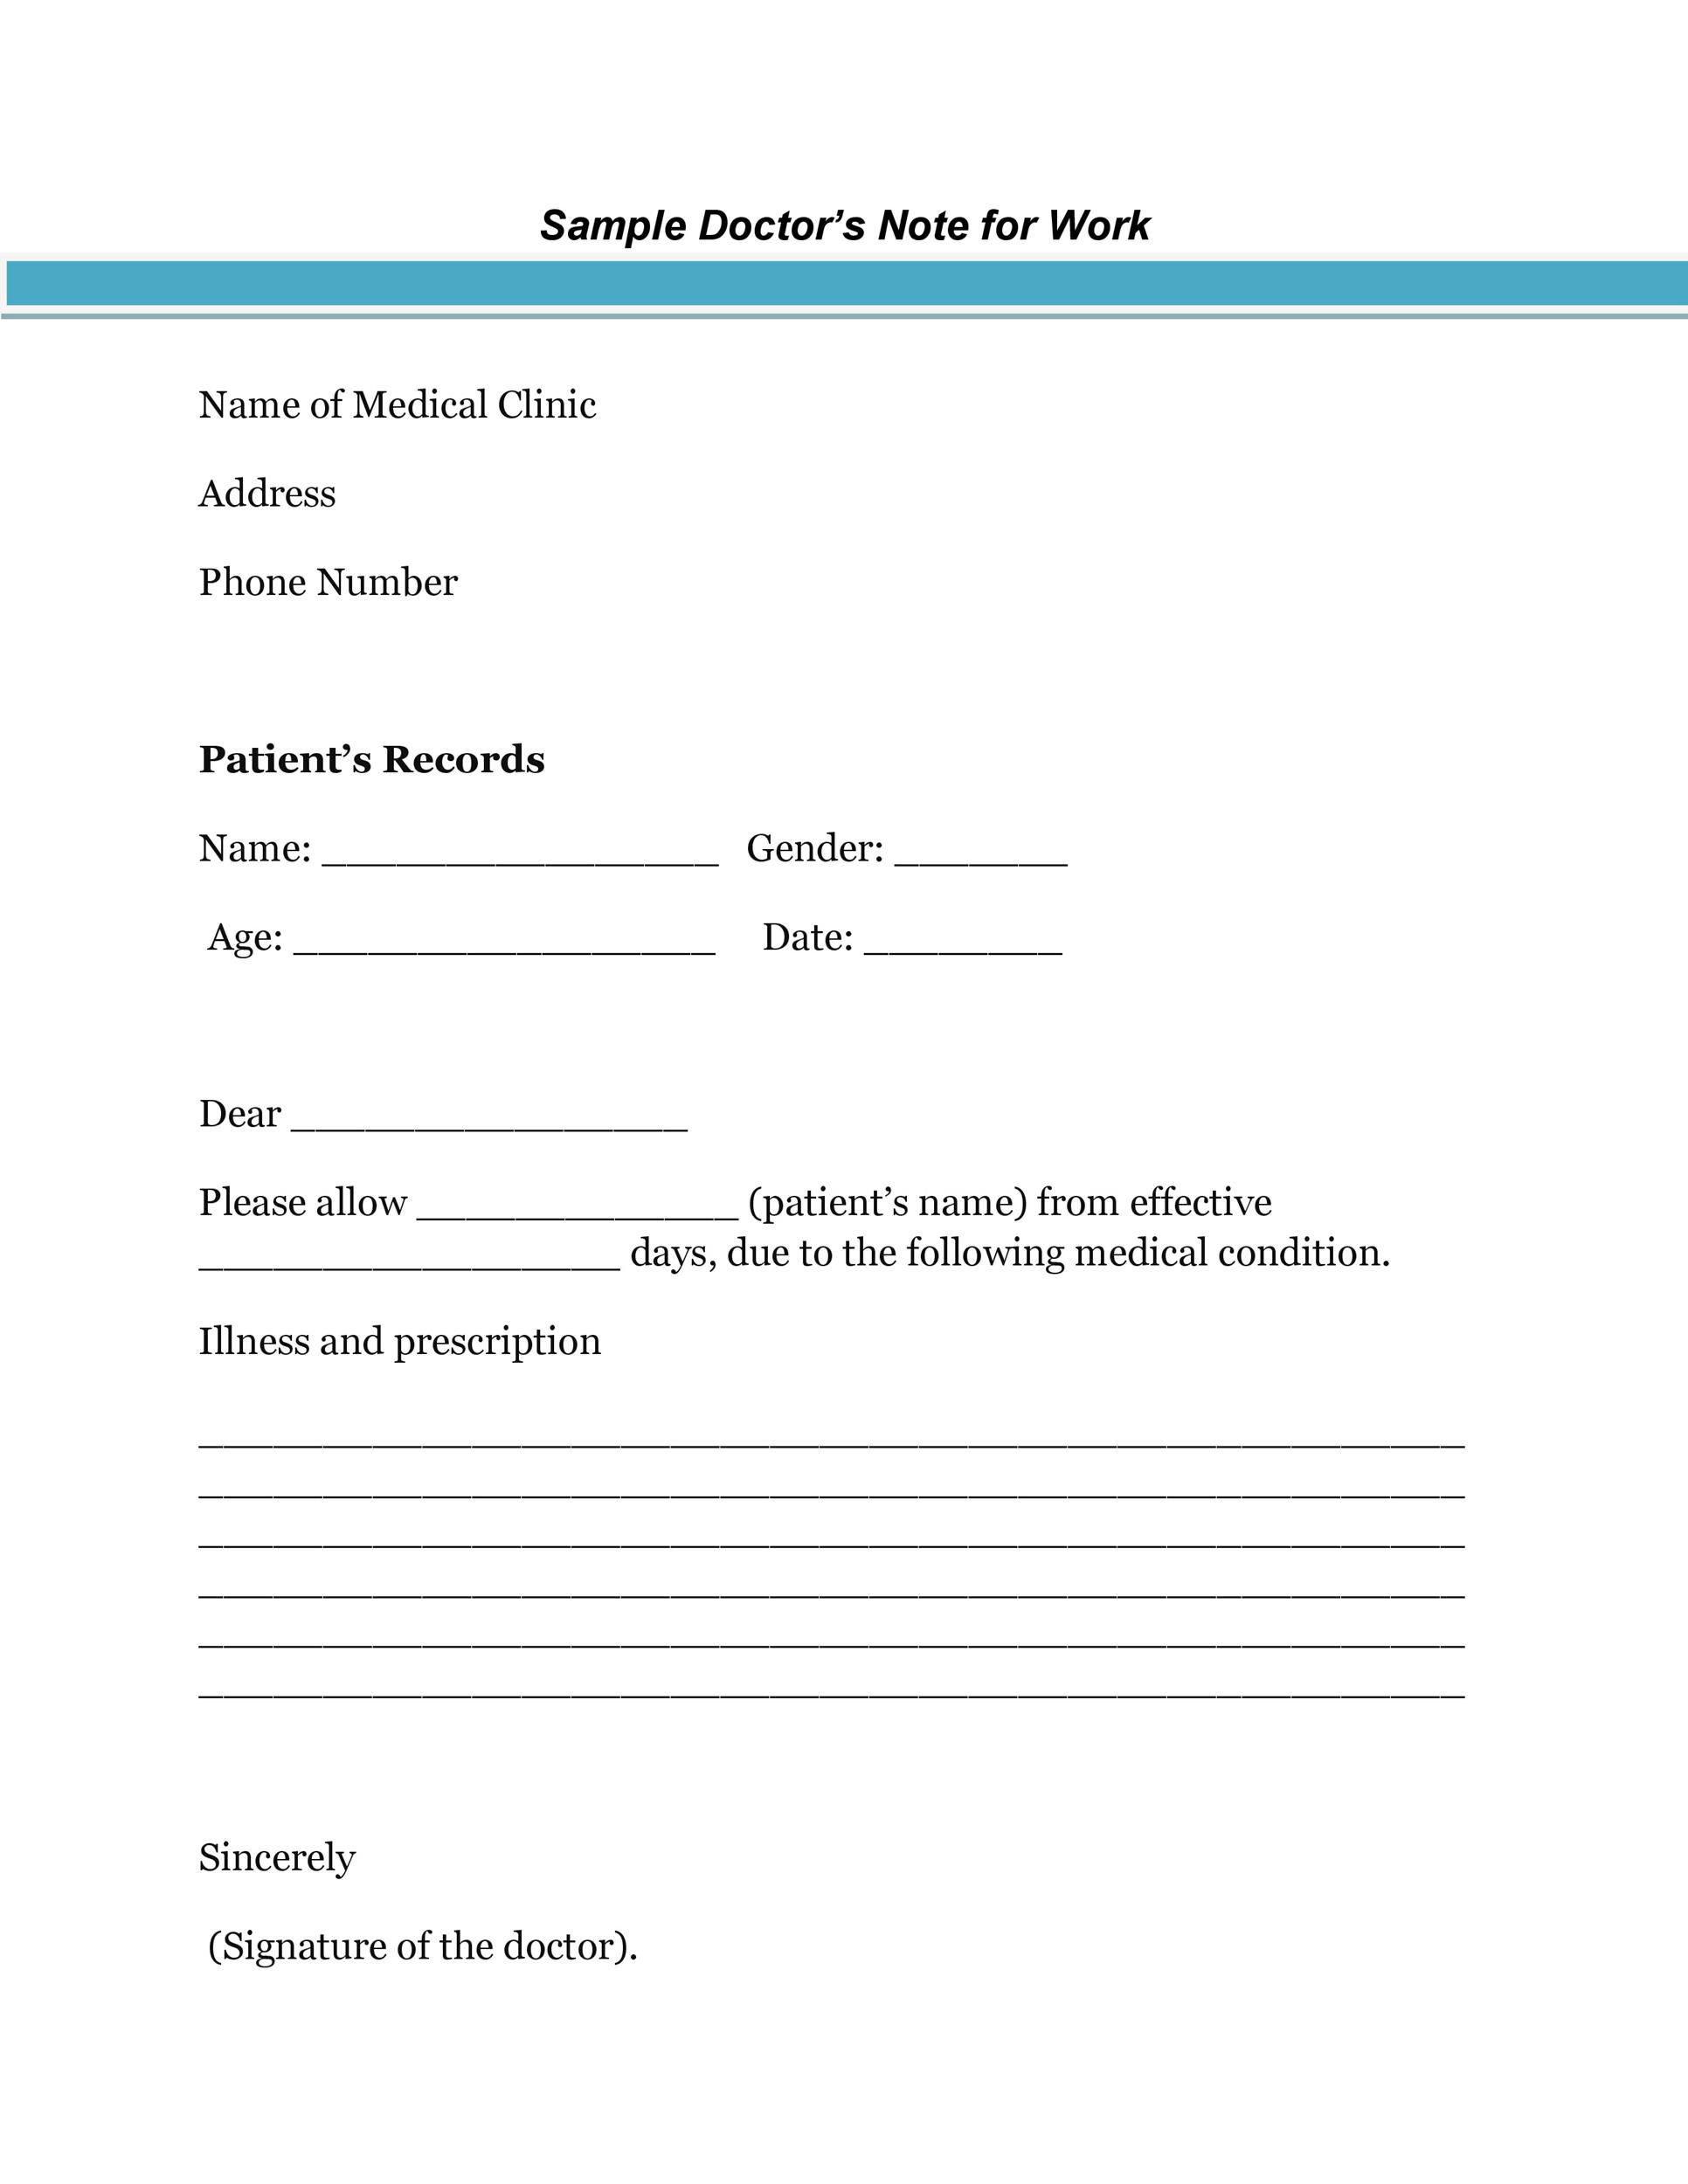 002 Unbelievable Doctor Note For Missing Work Template High Def  Doctor'Full